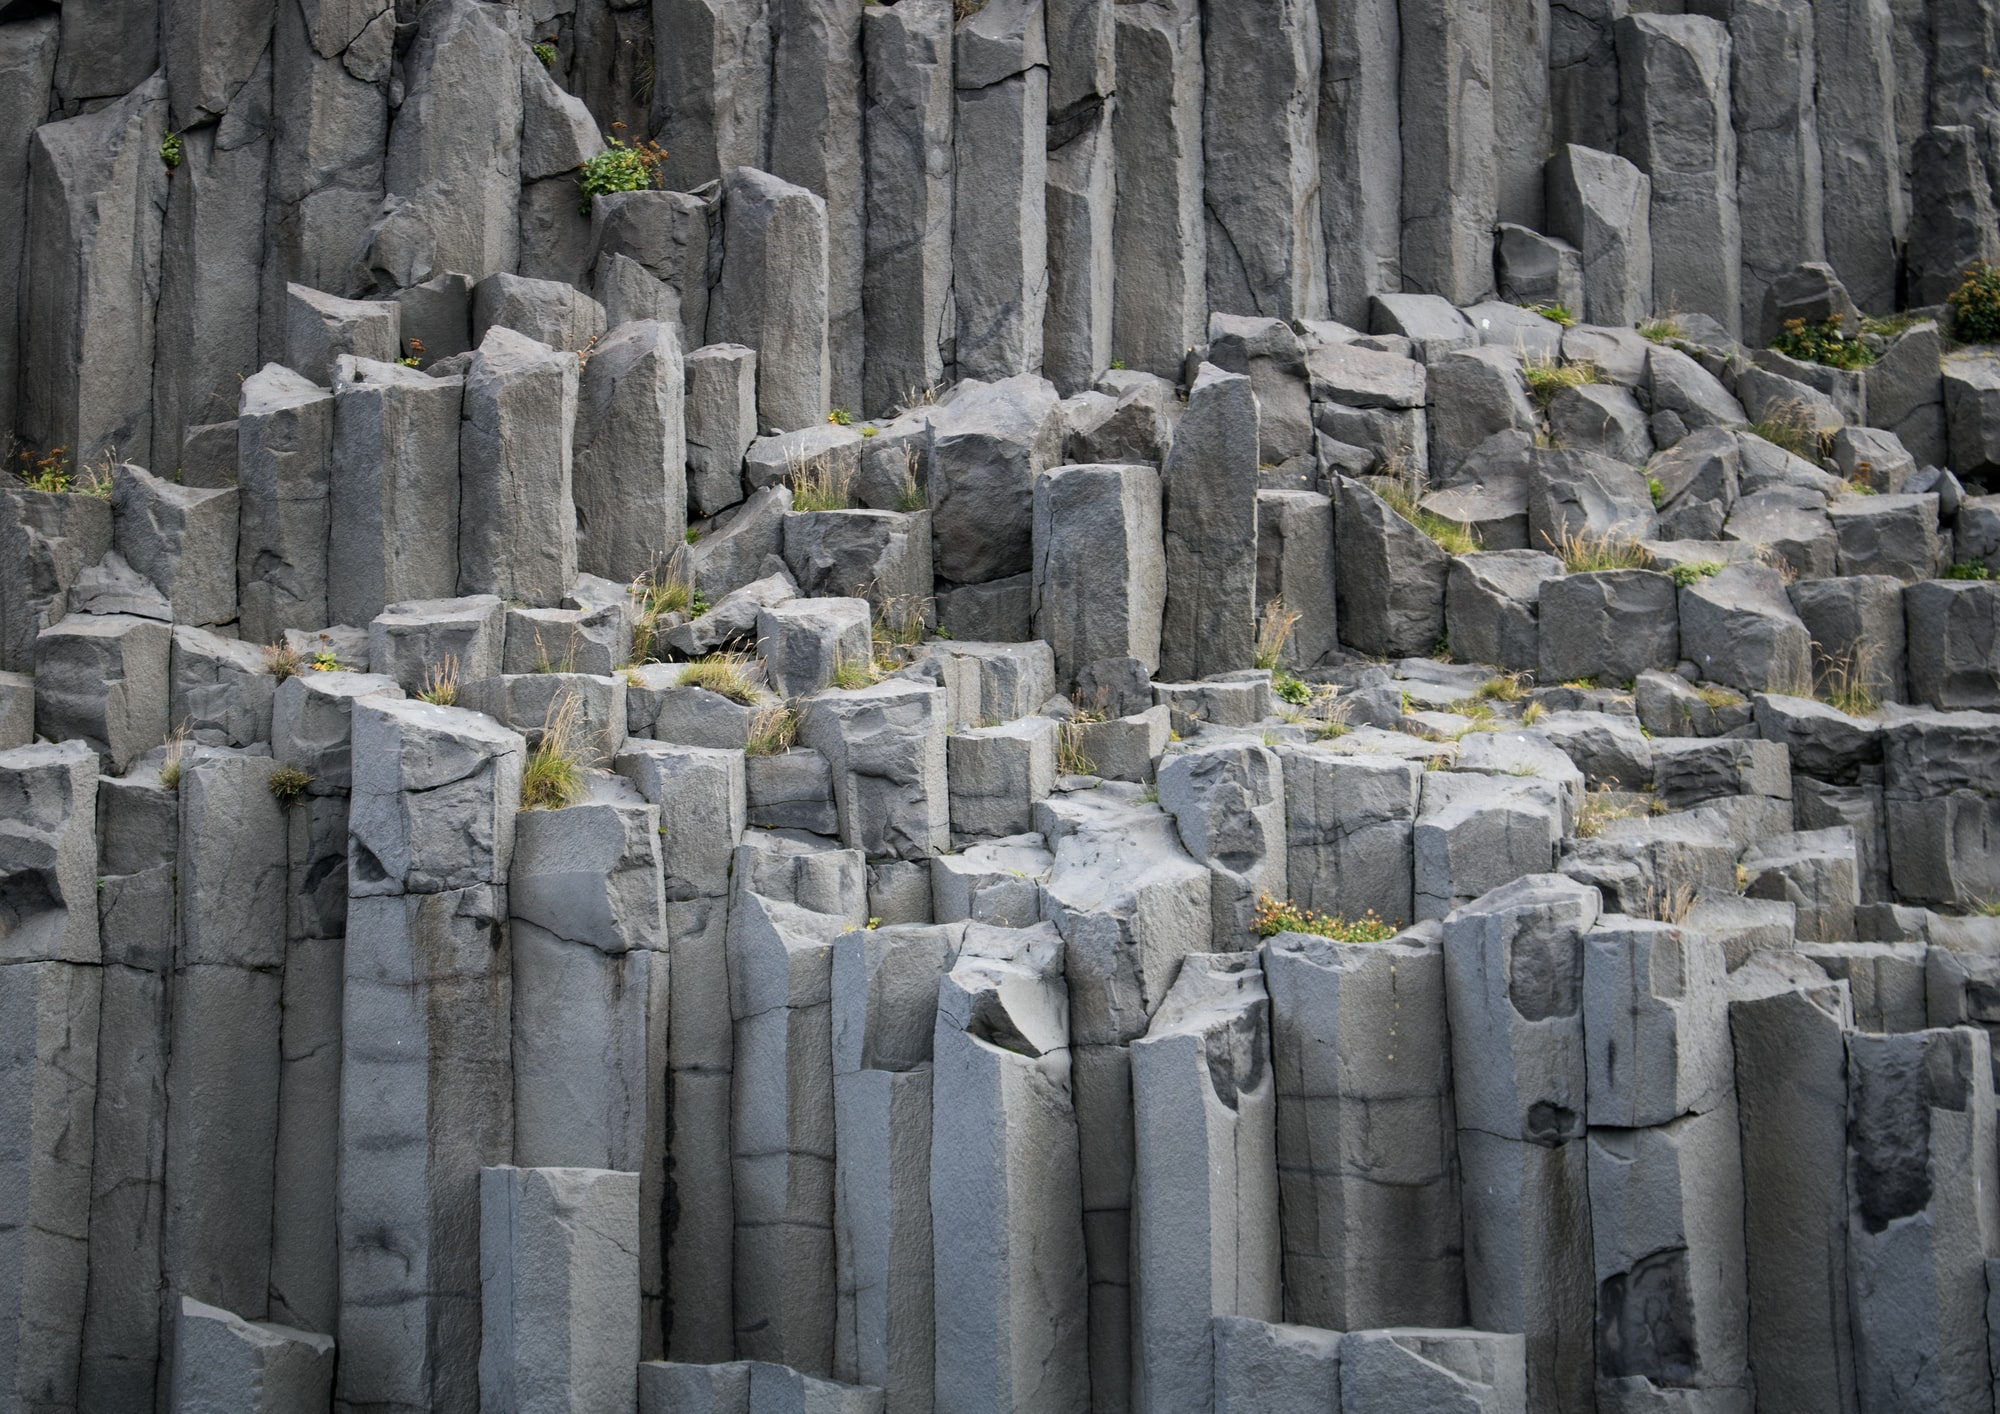 Few things make a cooler backdrop than columnar basalt. Shortly after this picture was taken I definitely climbed up there.